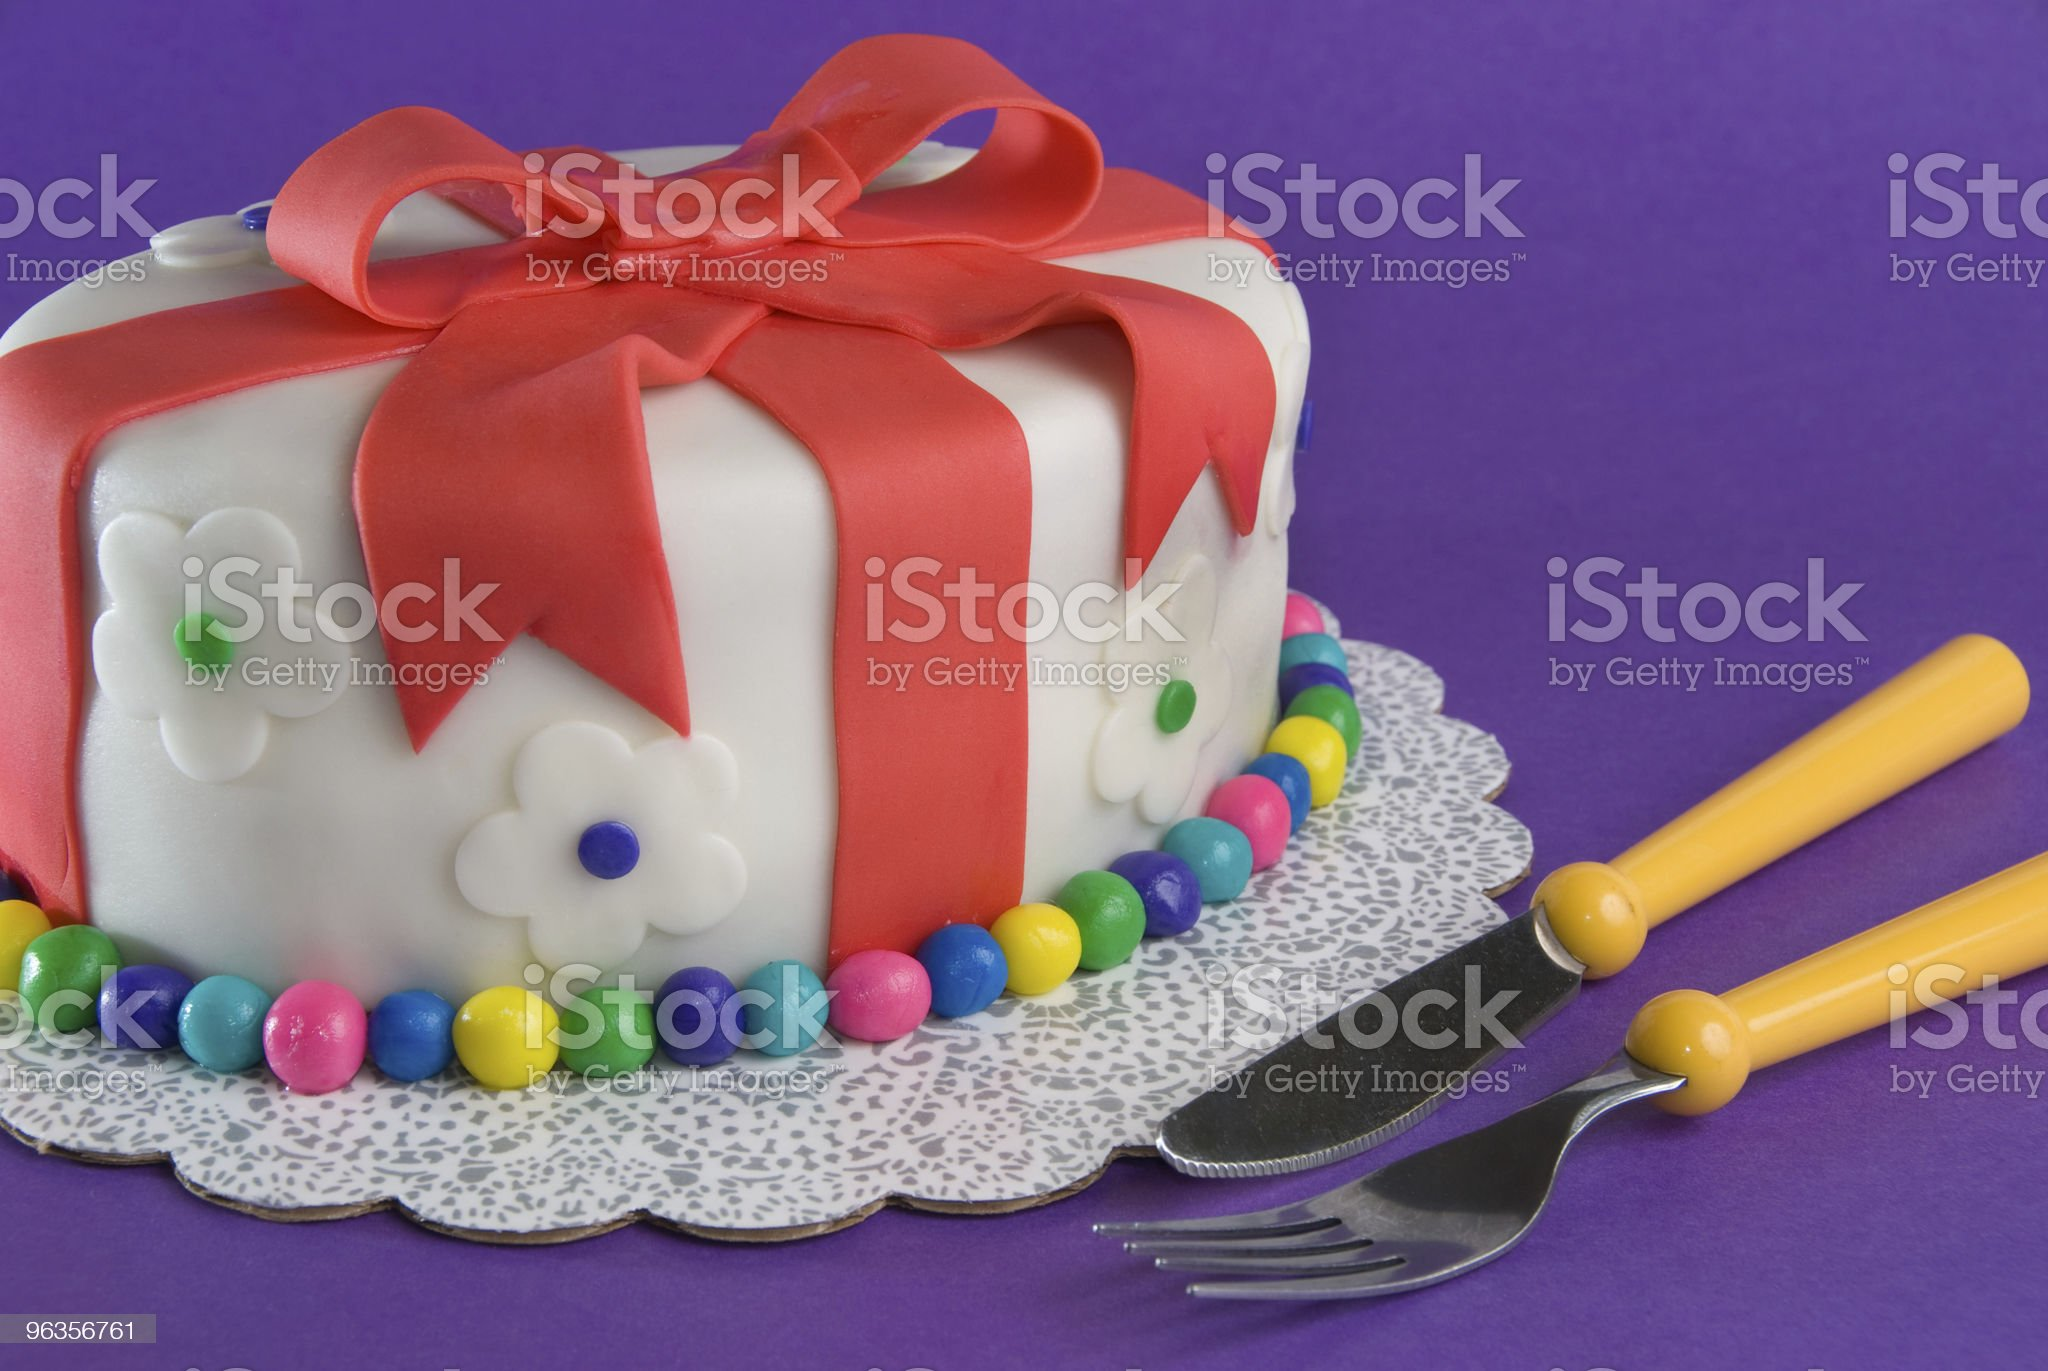 Fondant Gift Cake With Fork and Knife royalty-free stock photo